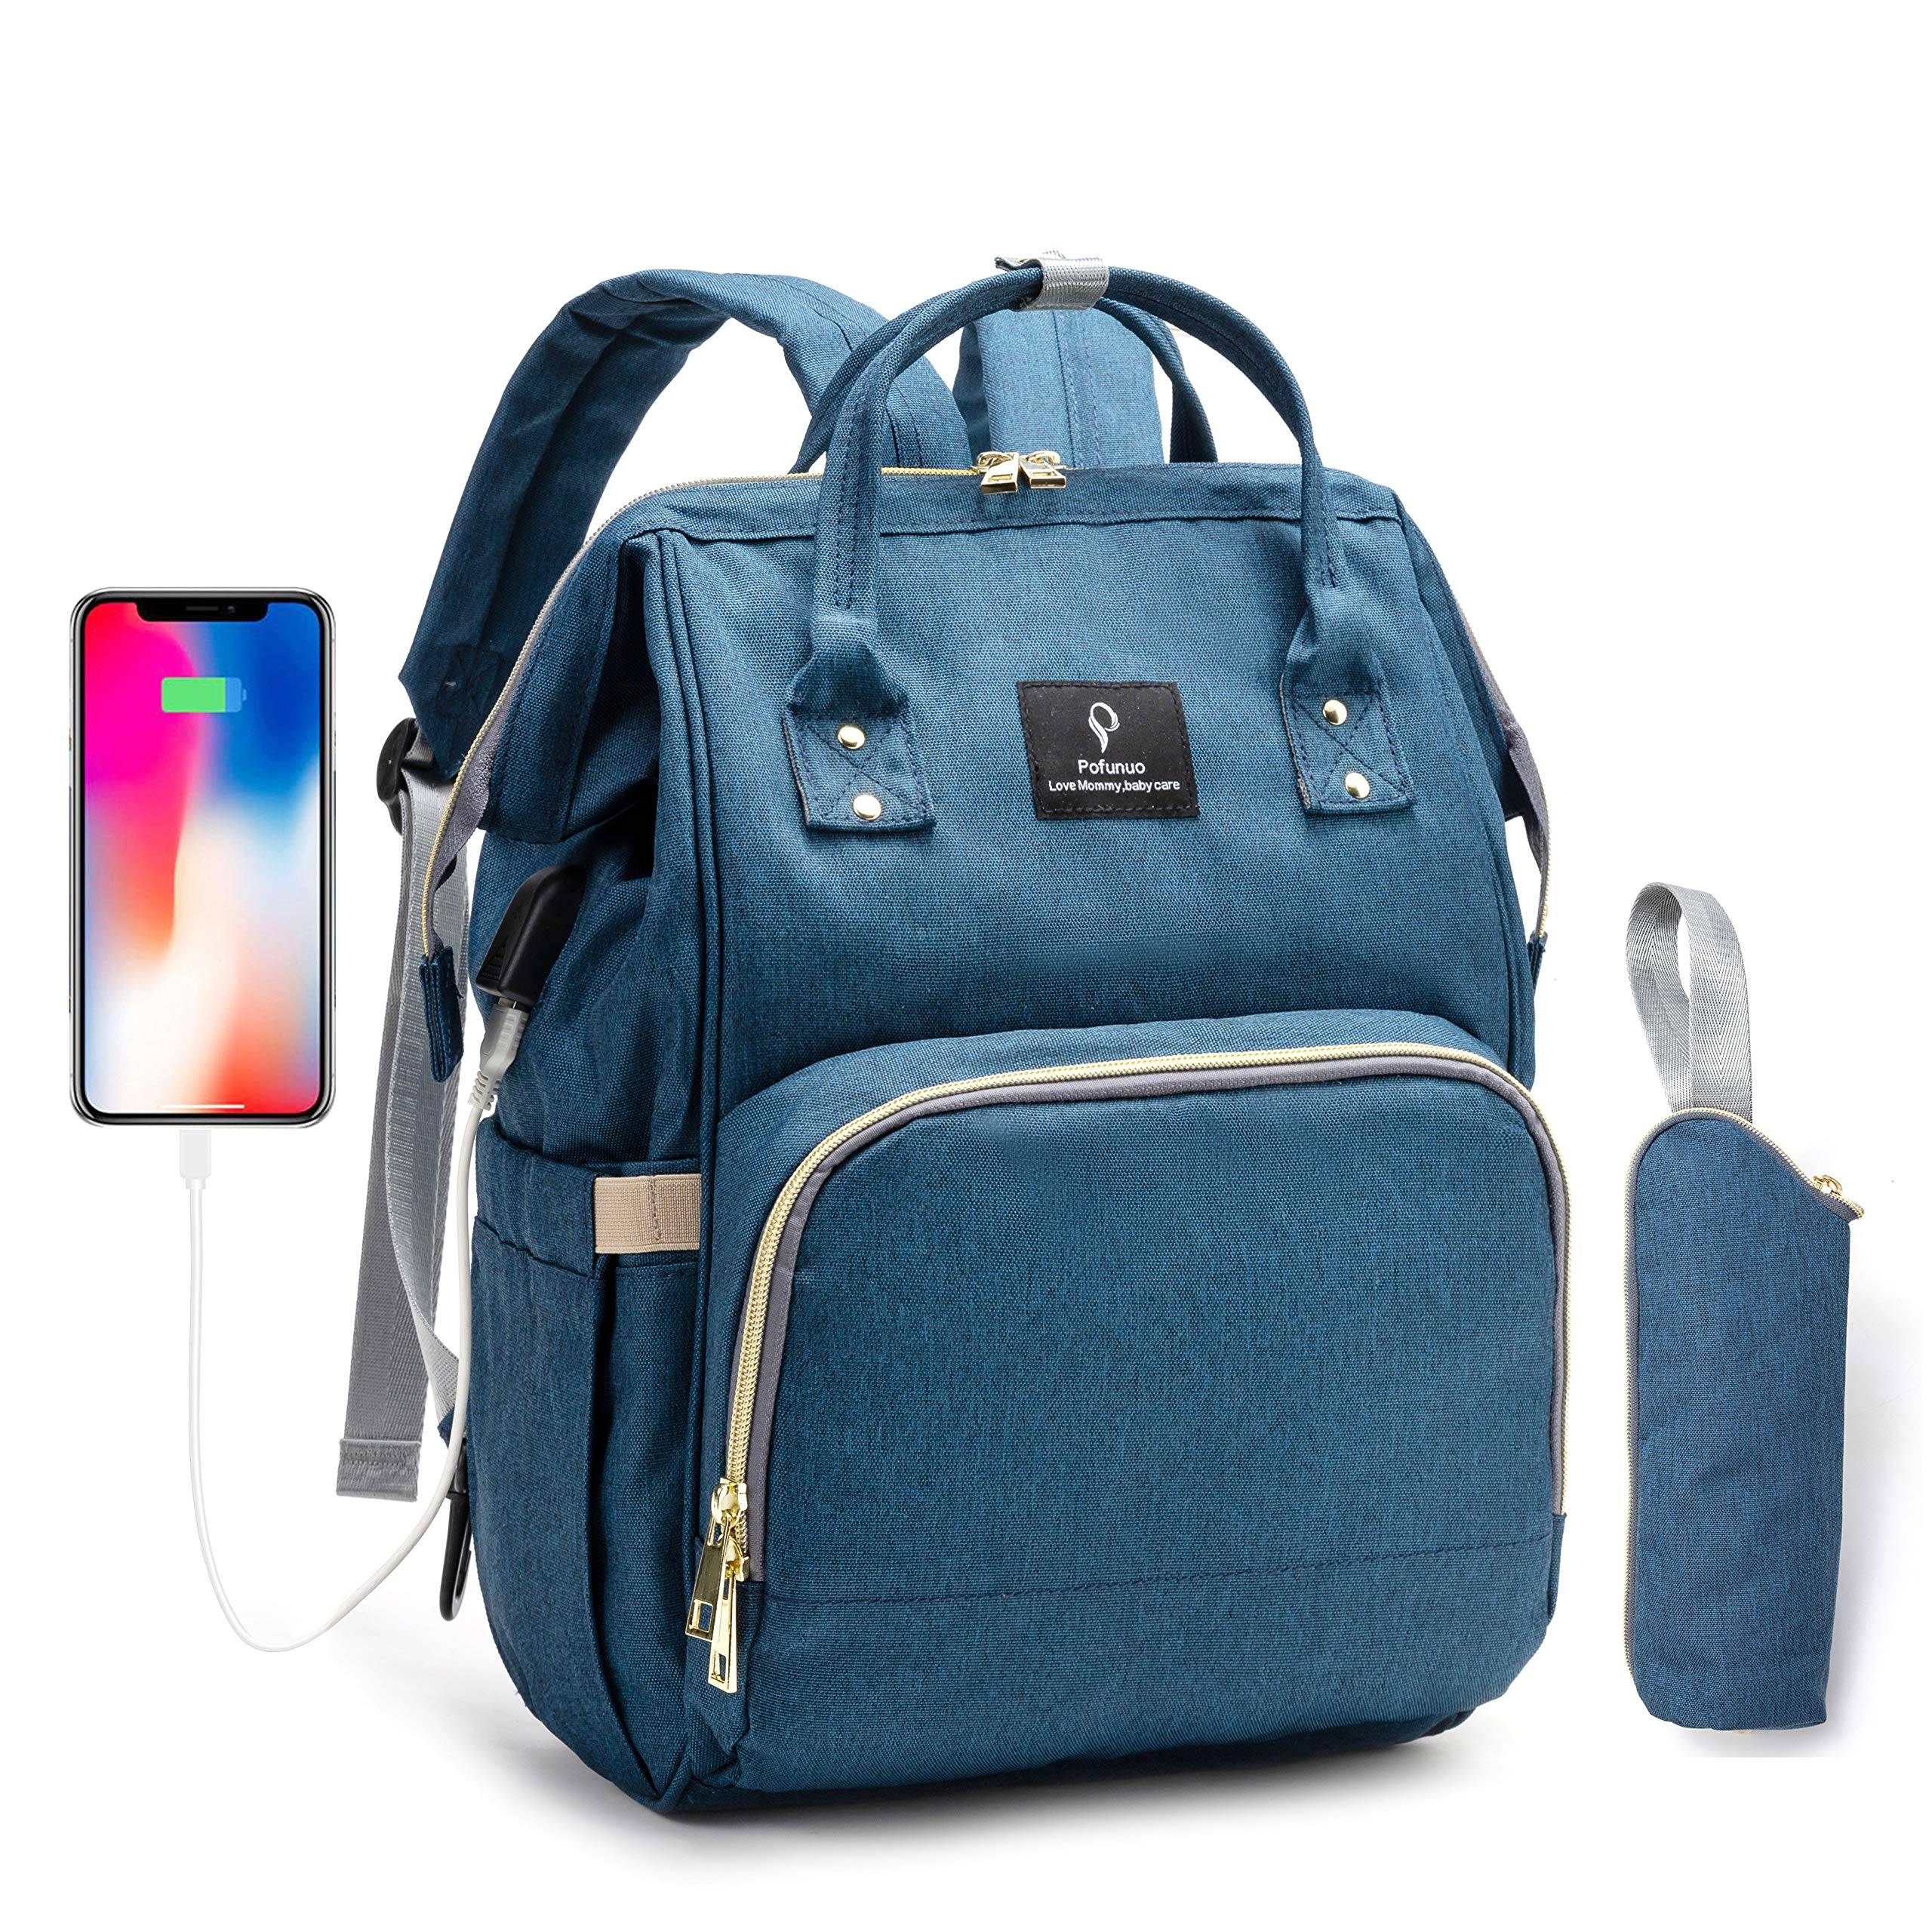 POFUNUO Diaper Bag Multi-Function Waterproof Nappy Travel Backpack for Baby Care with Stroller Hooks (Dark blue)